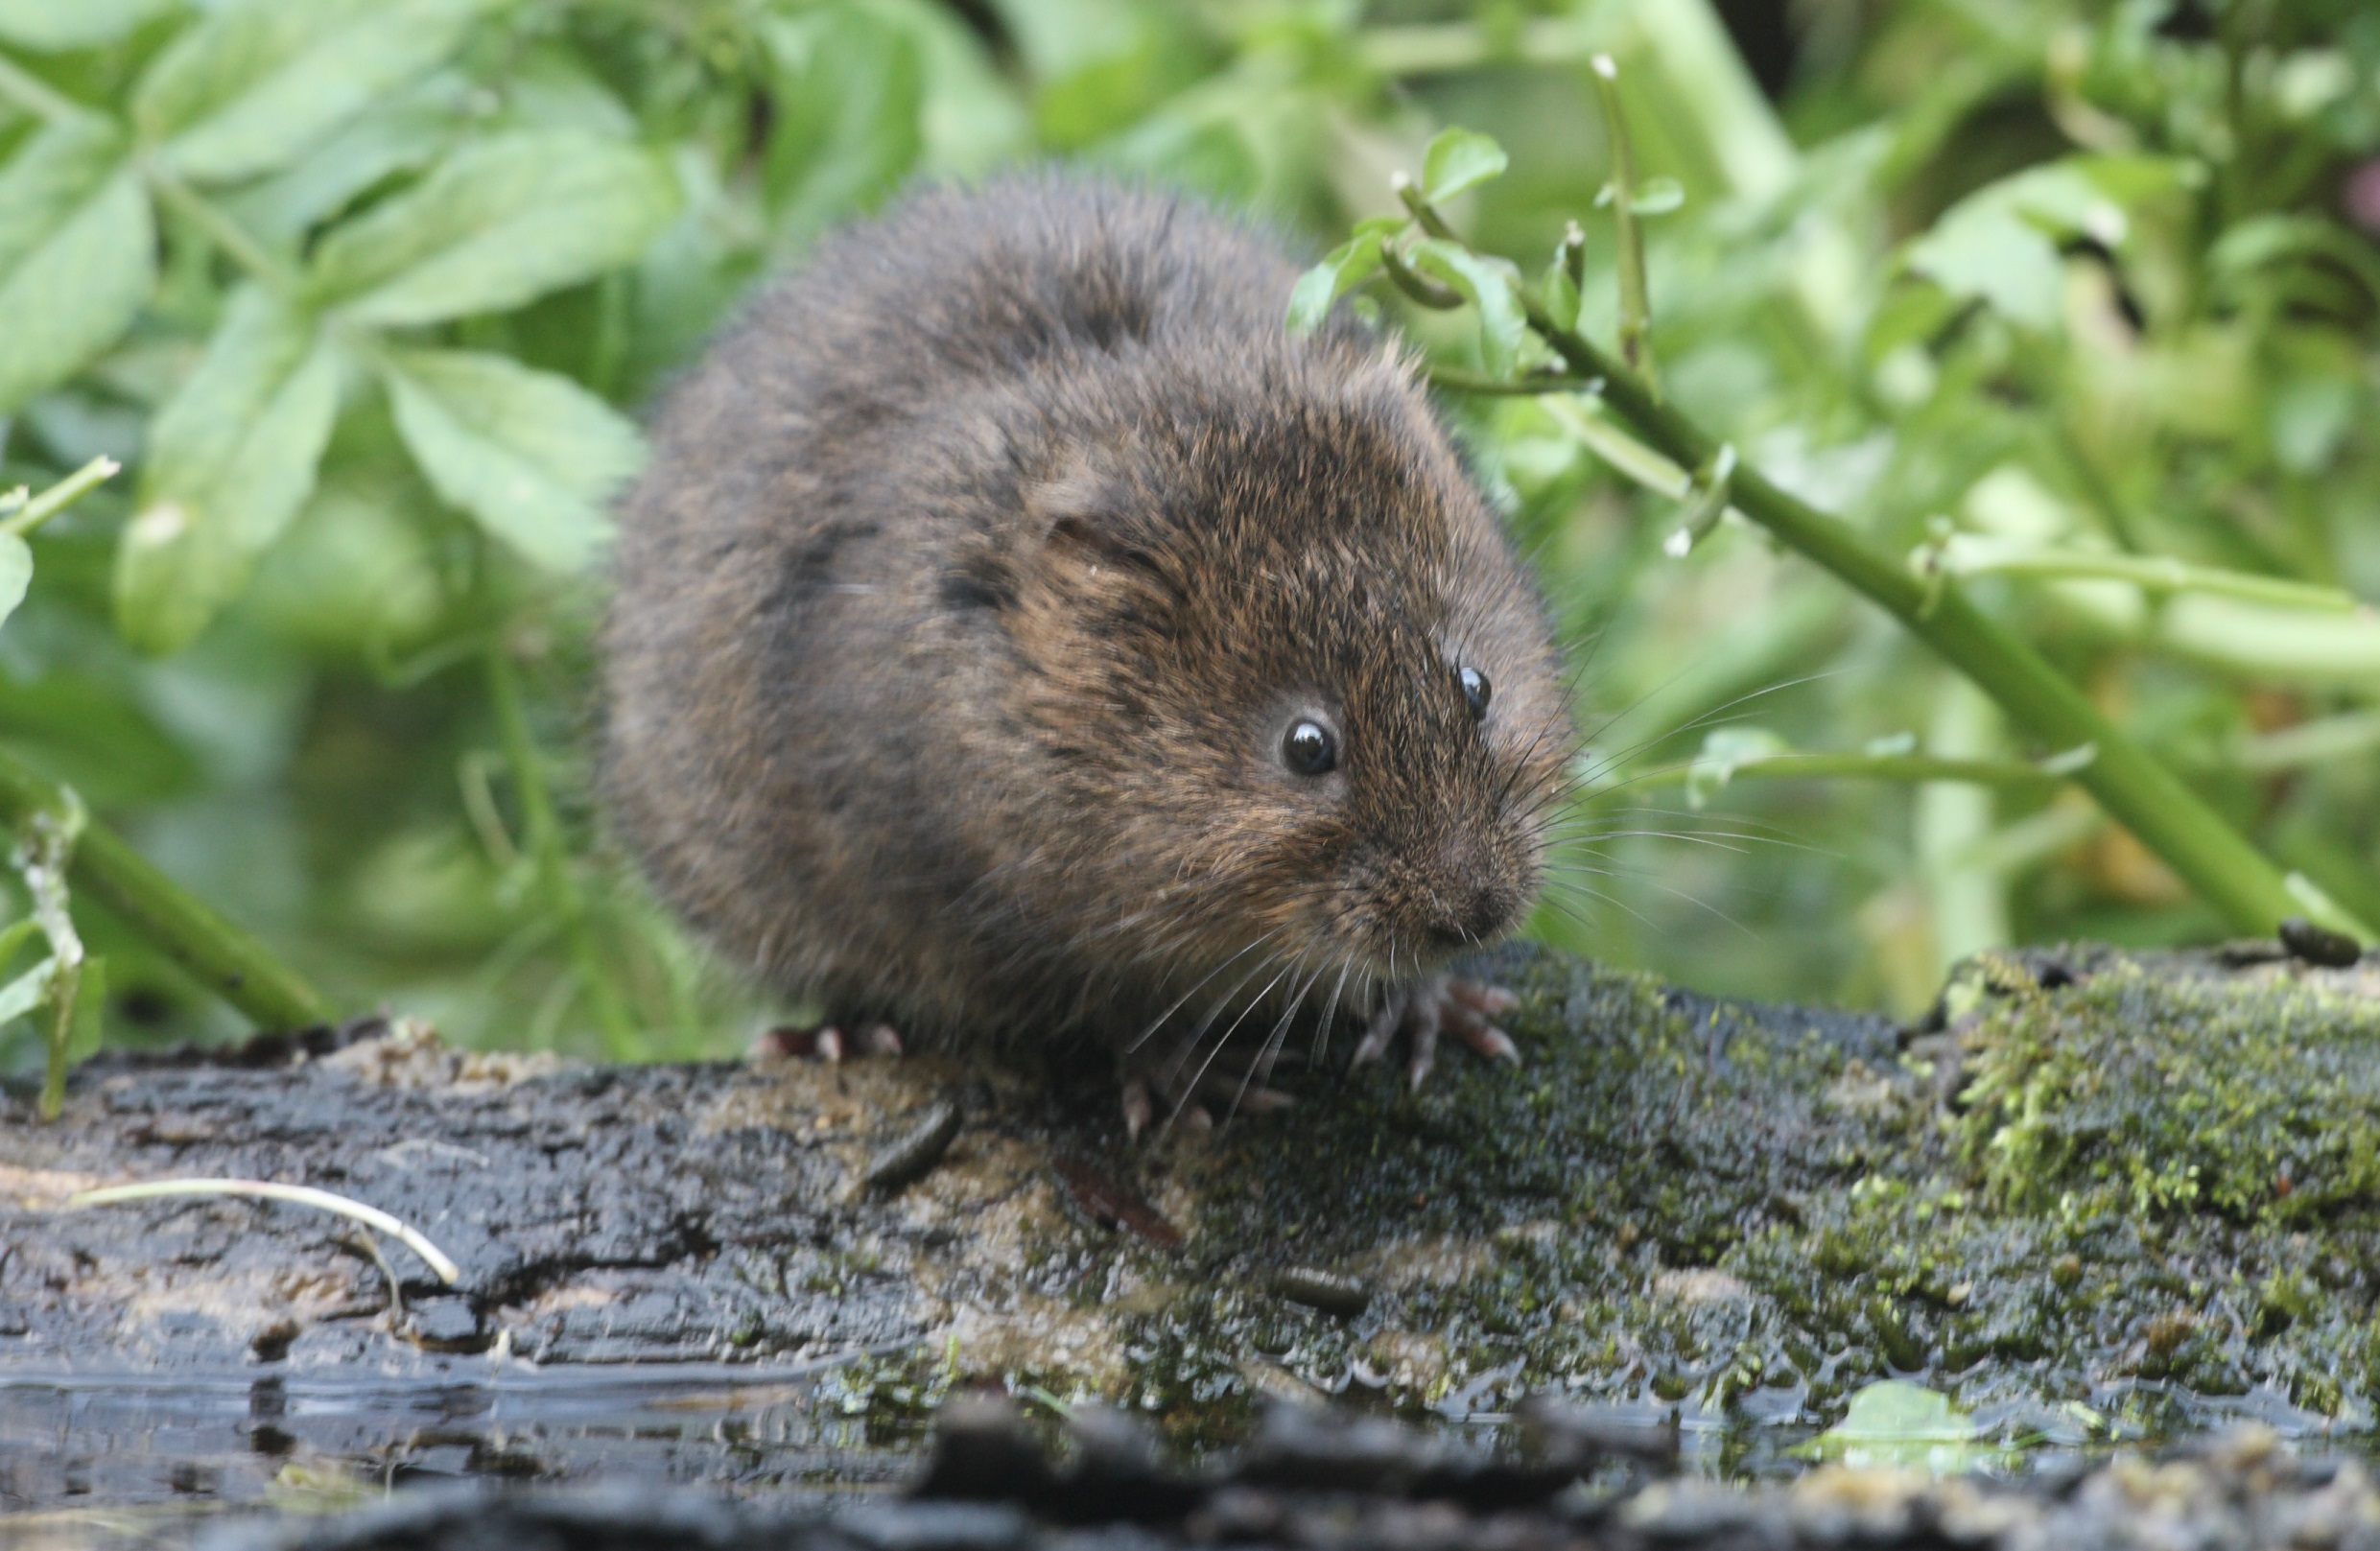 Water vole by Mike Lane